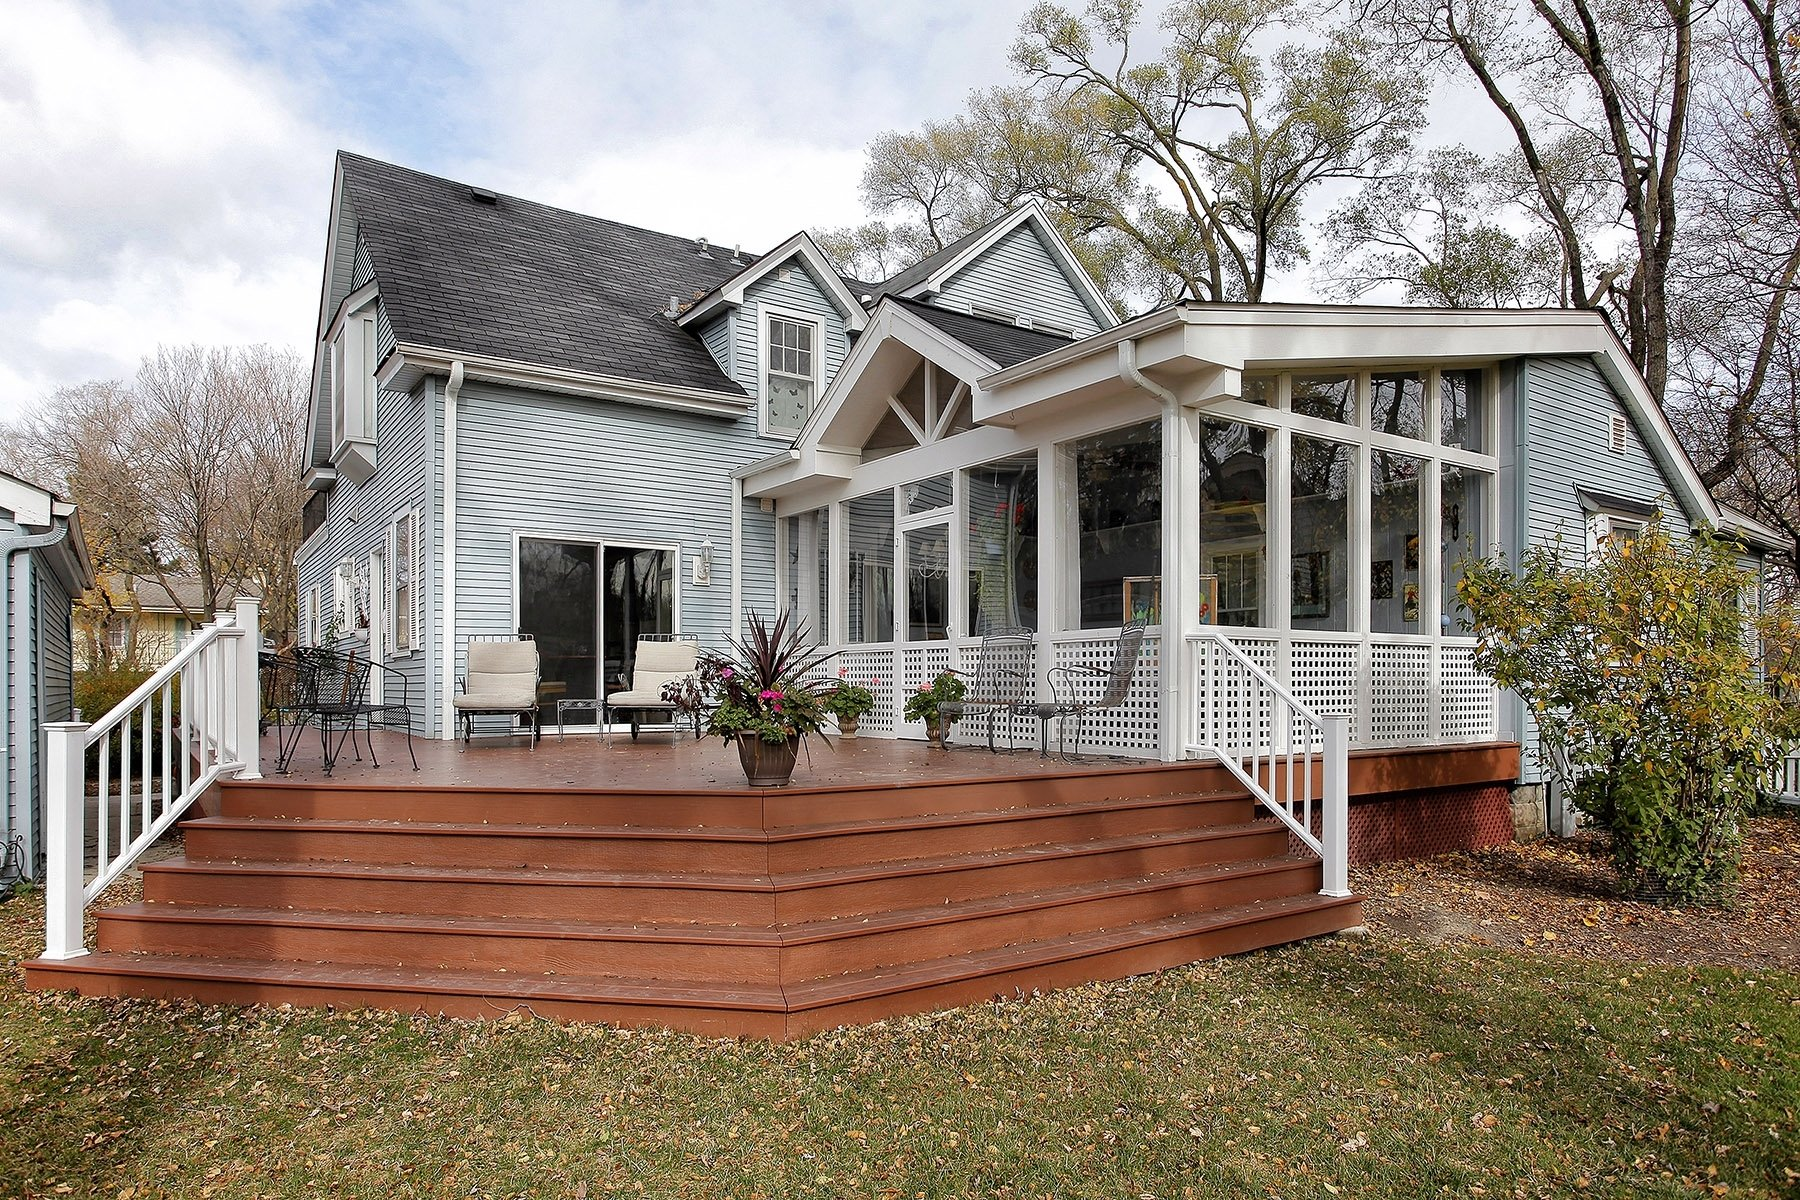 10 Best Back Porch Ideas For Houses best screened in back porch designs remodel interior planning 2021